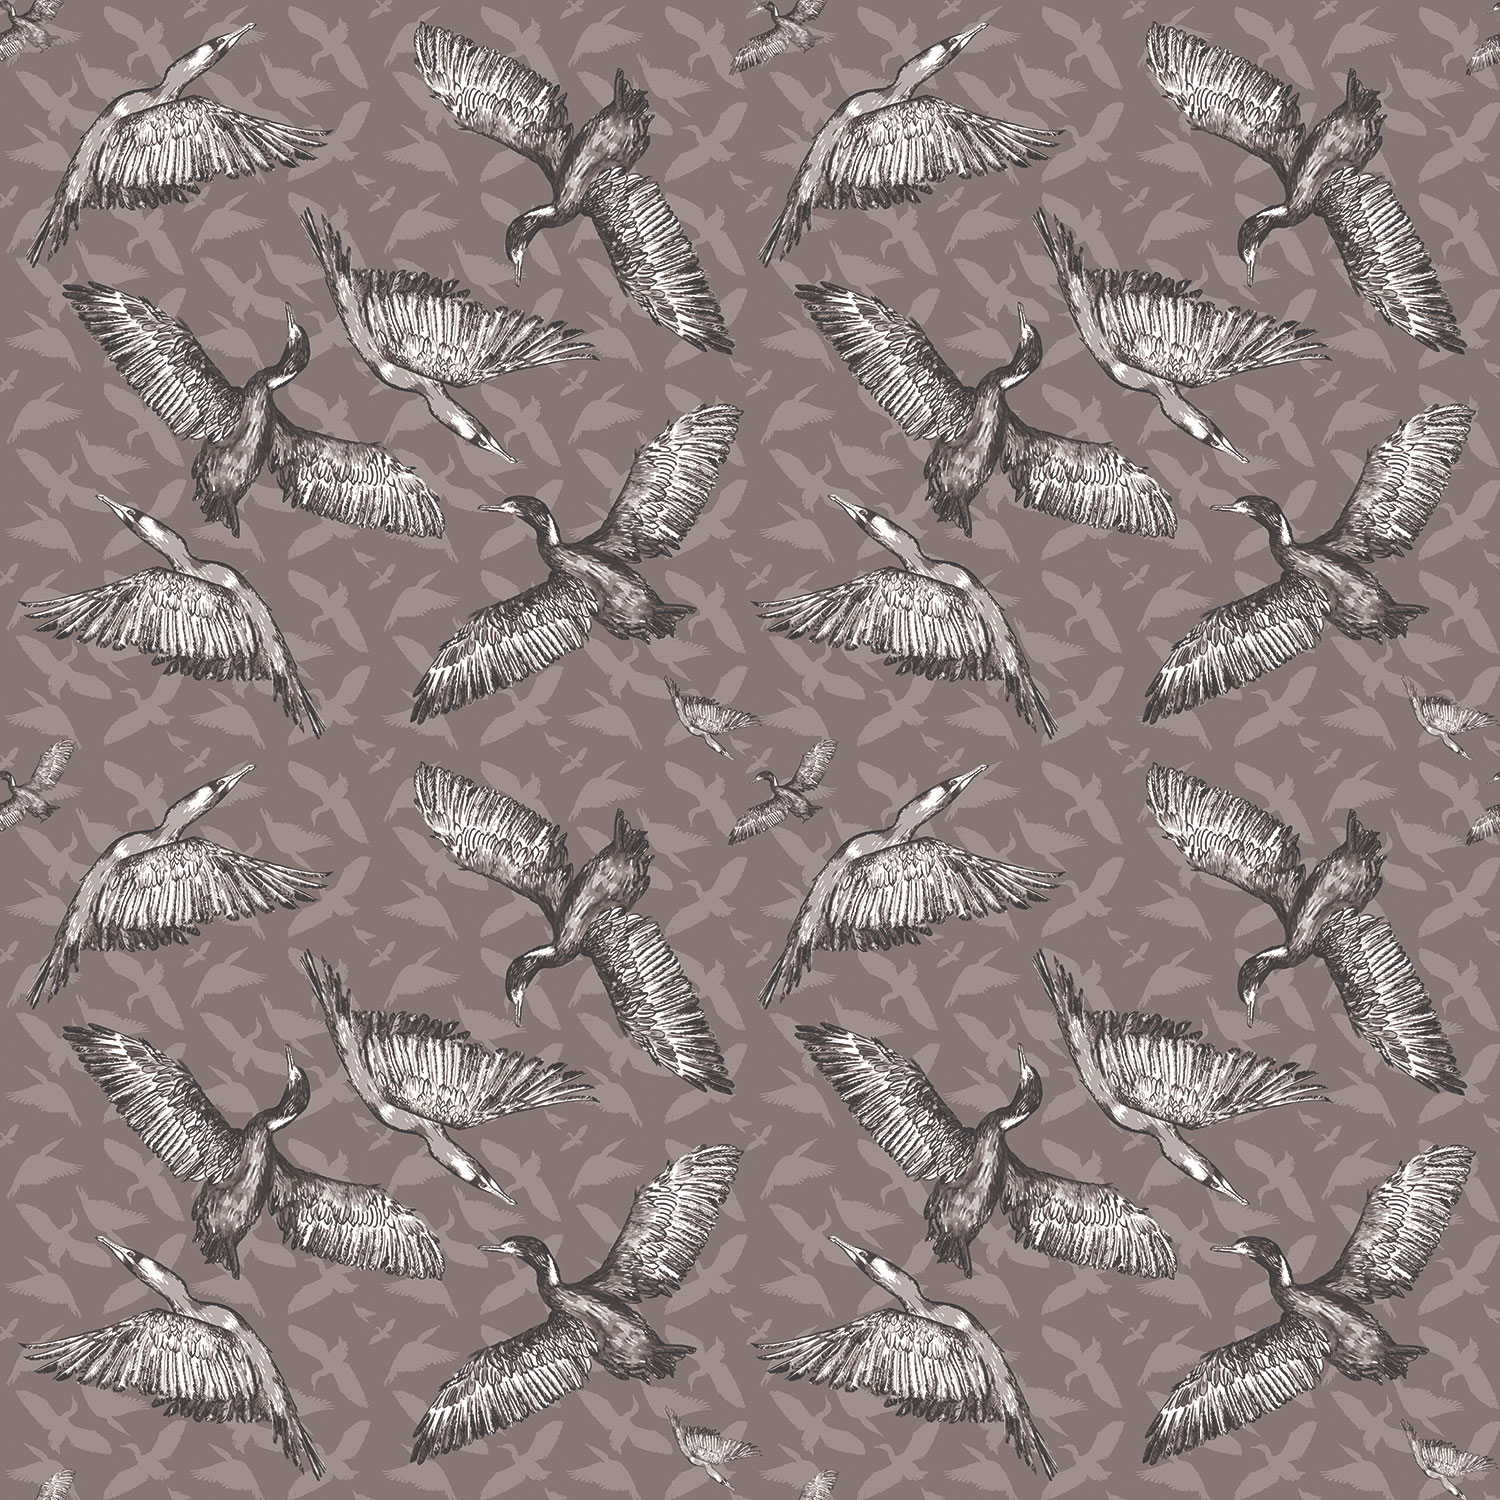 cormorants birds grey pattern textiles surface design